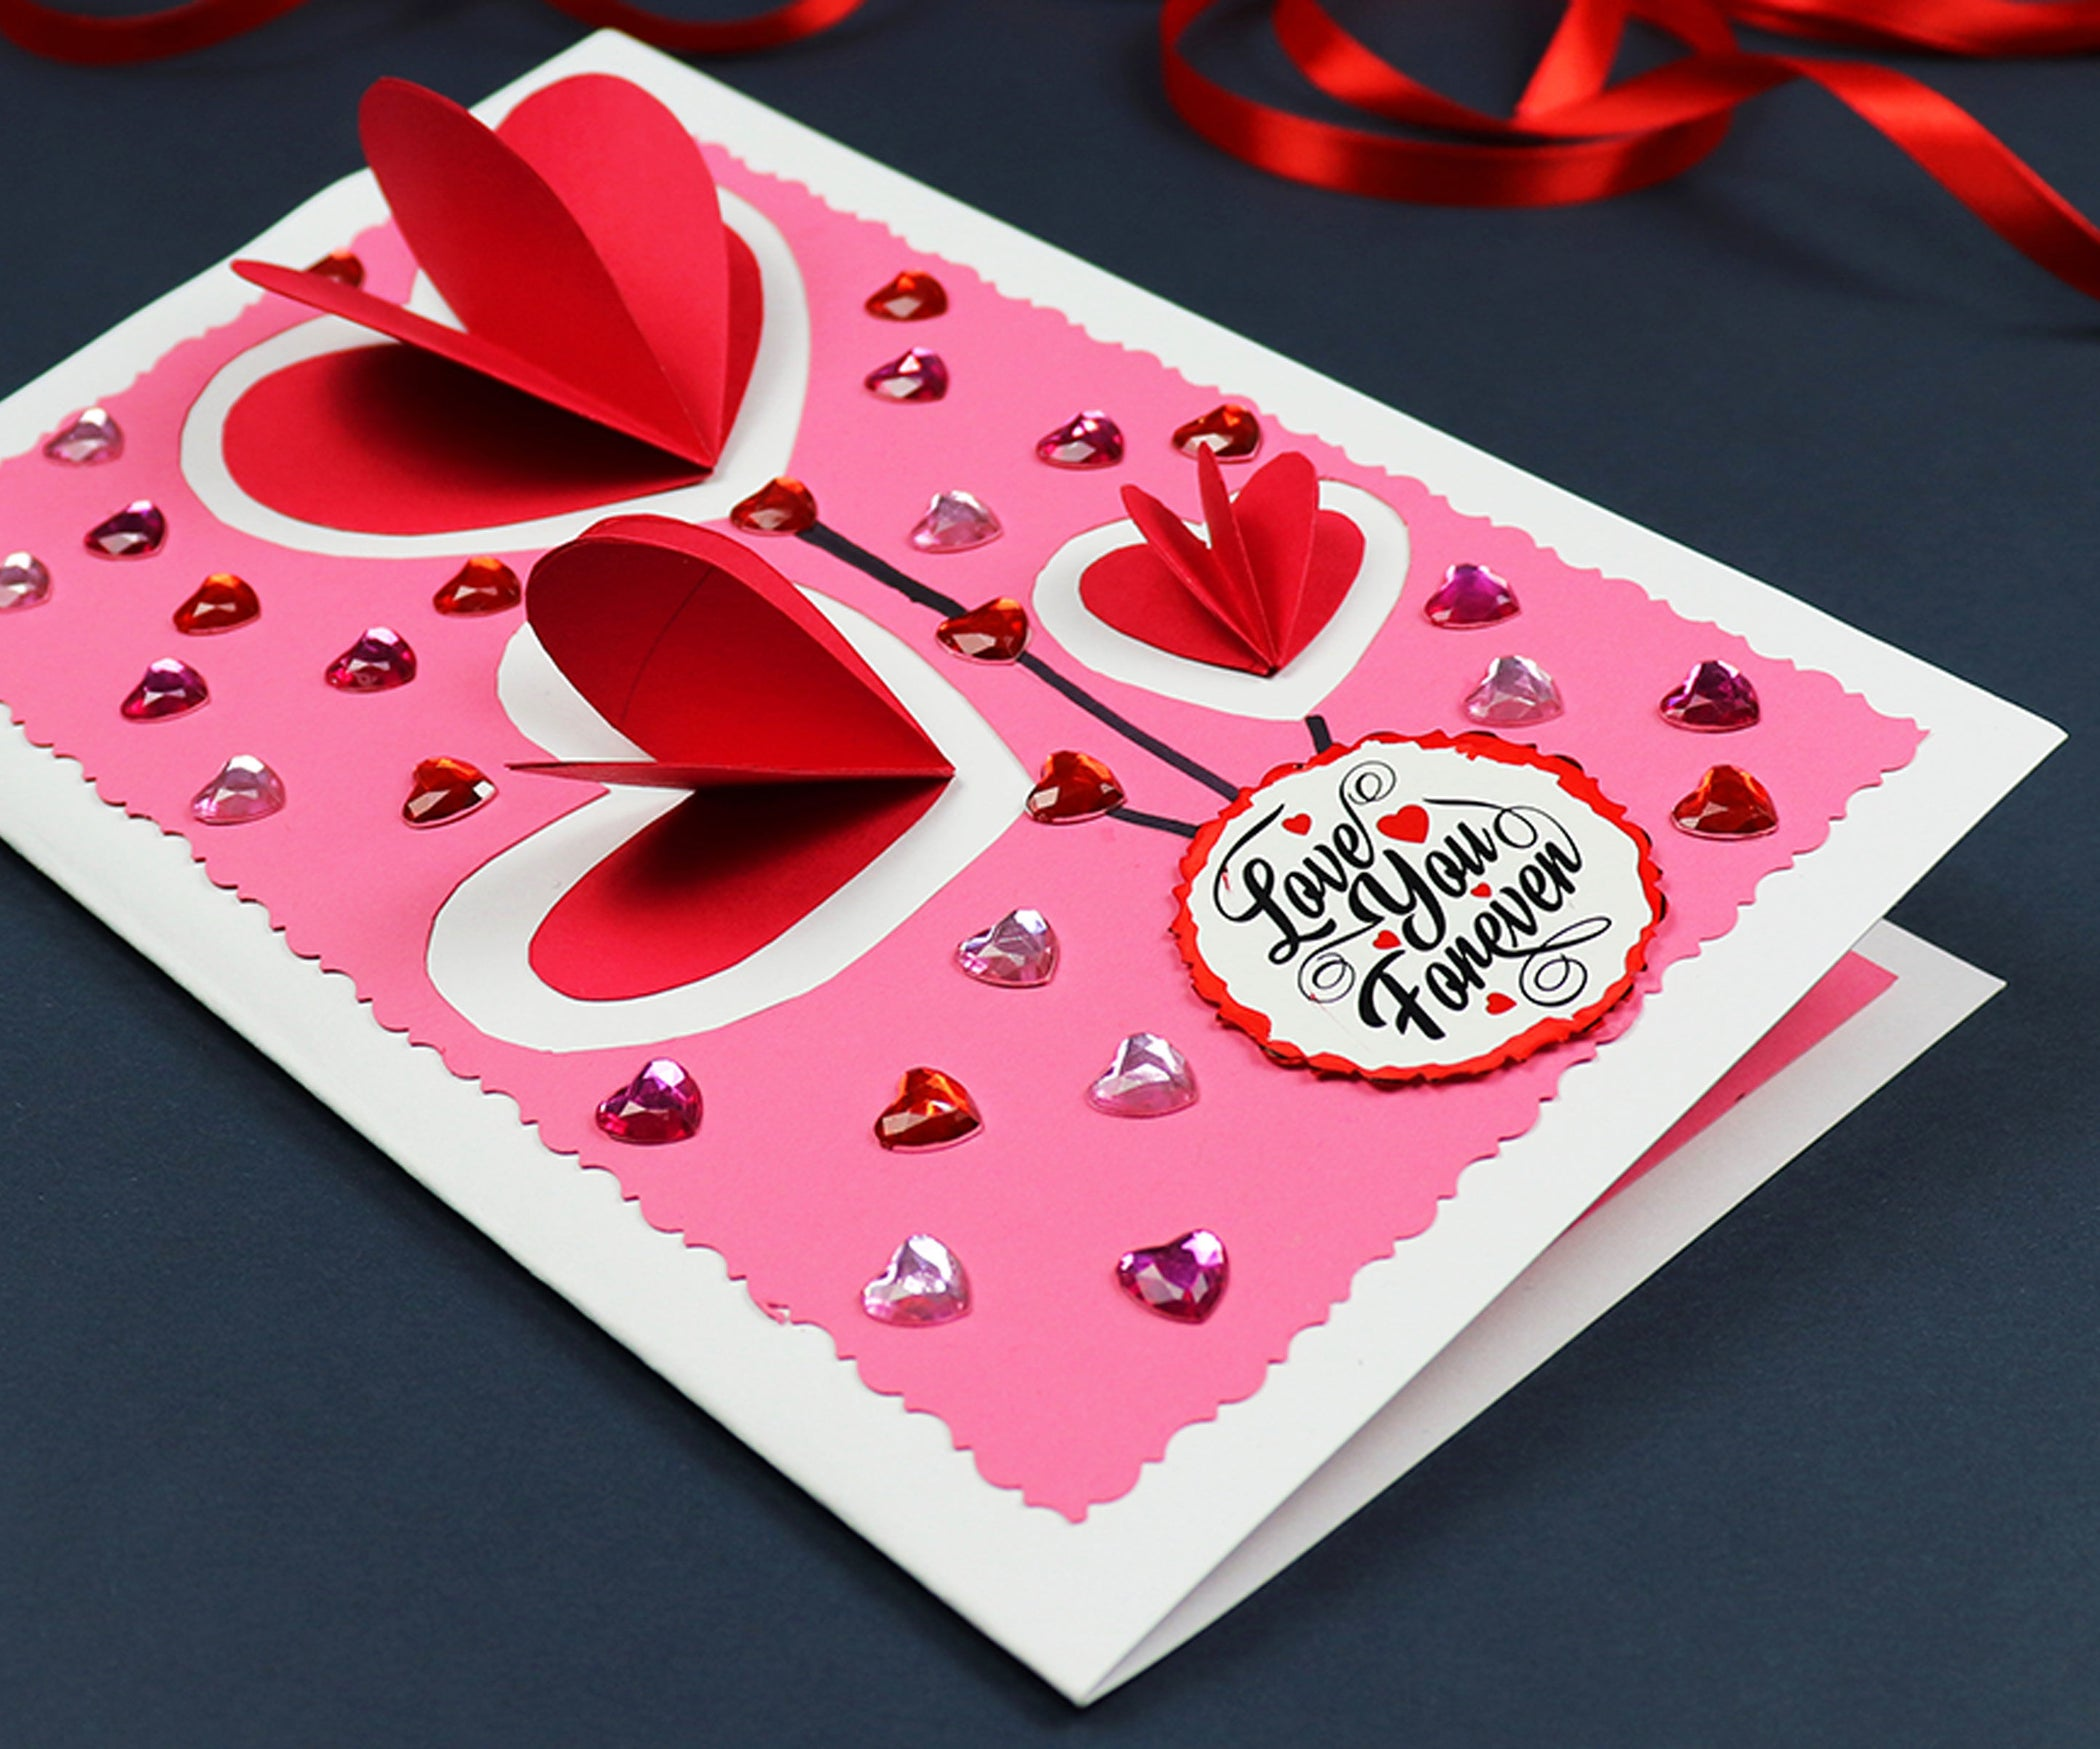 Diy Pop Up Hearts Valentine S Day Card 7 Steps With Pictures Instructables